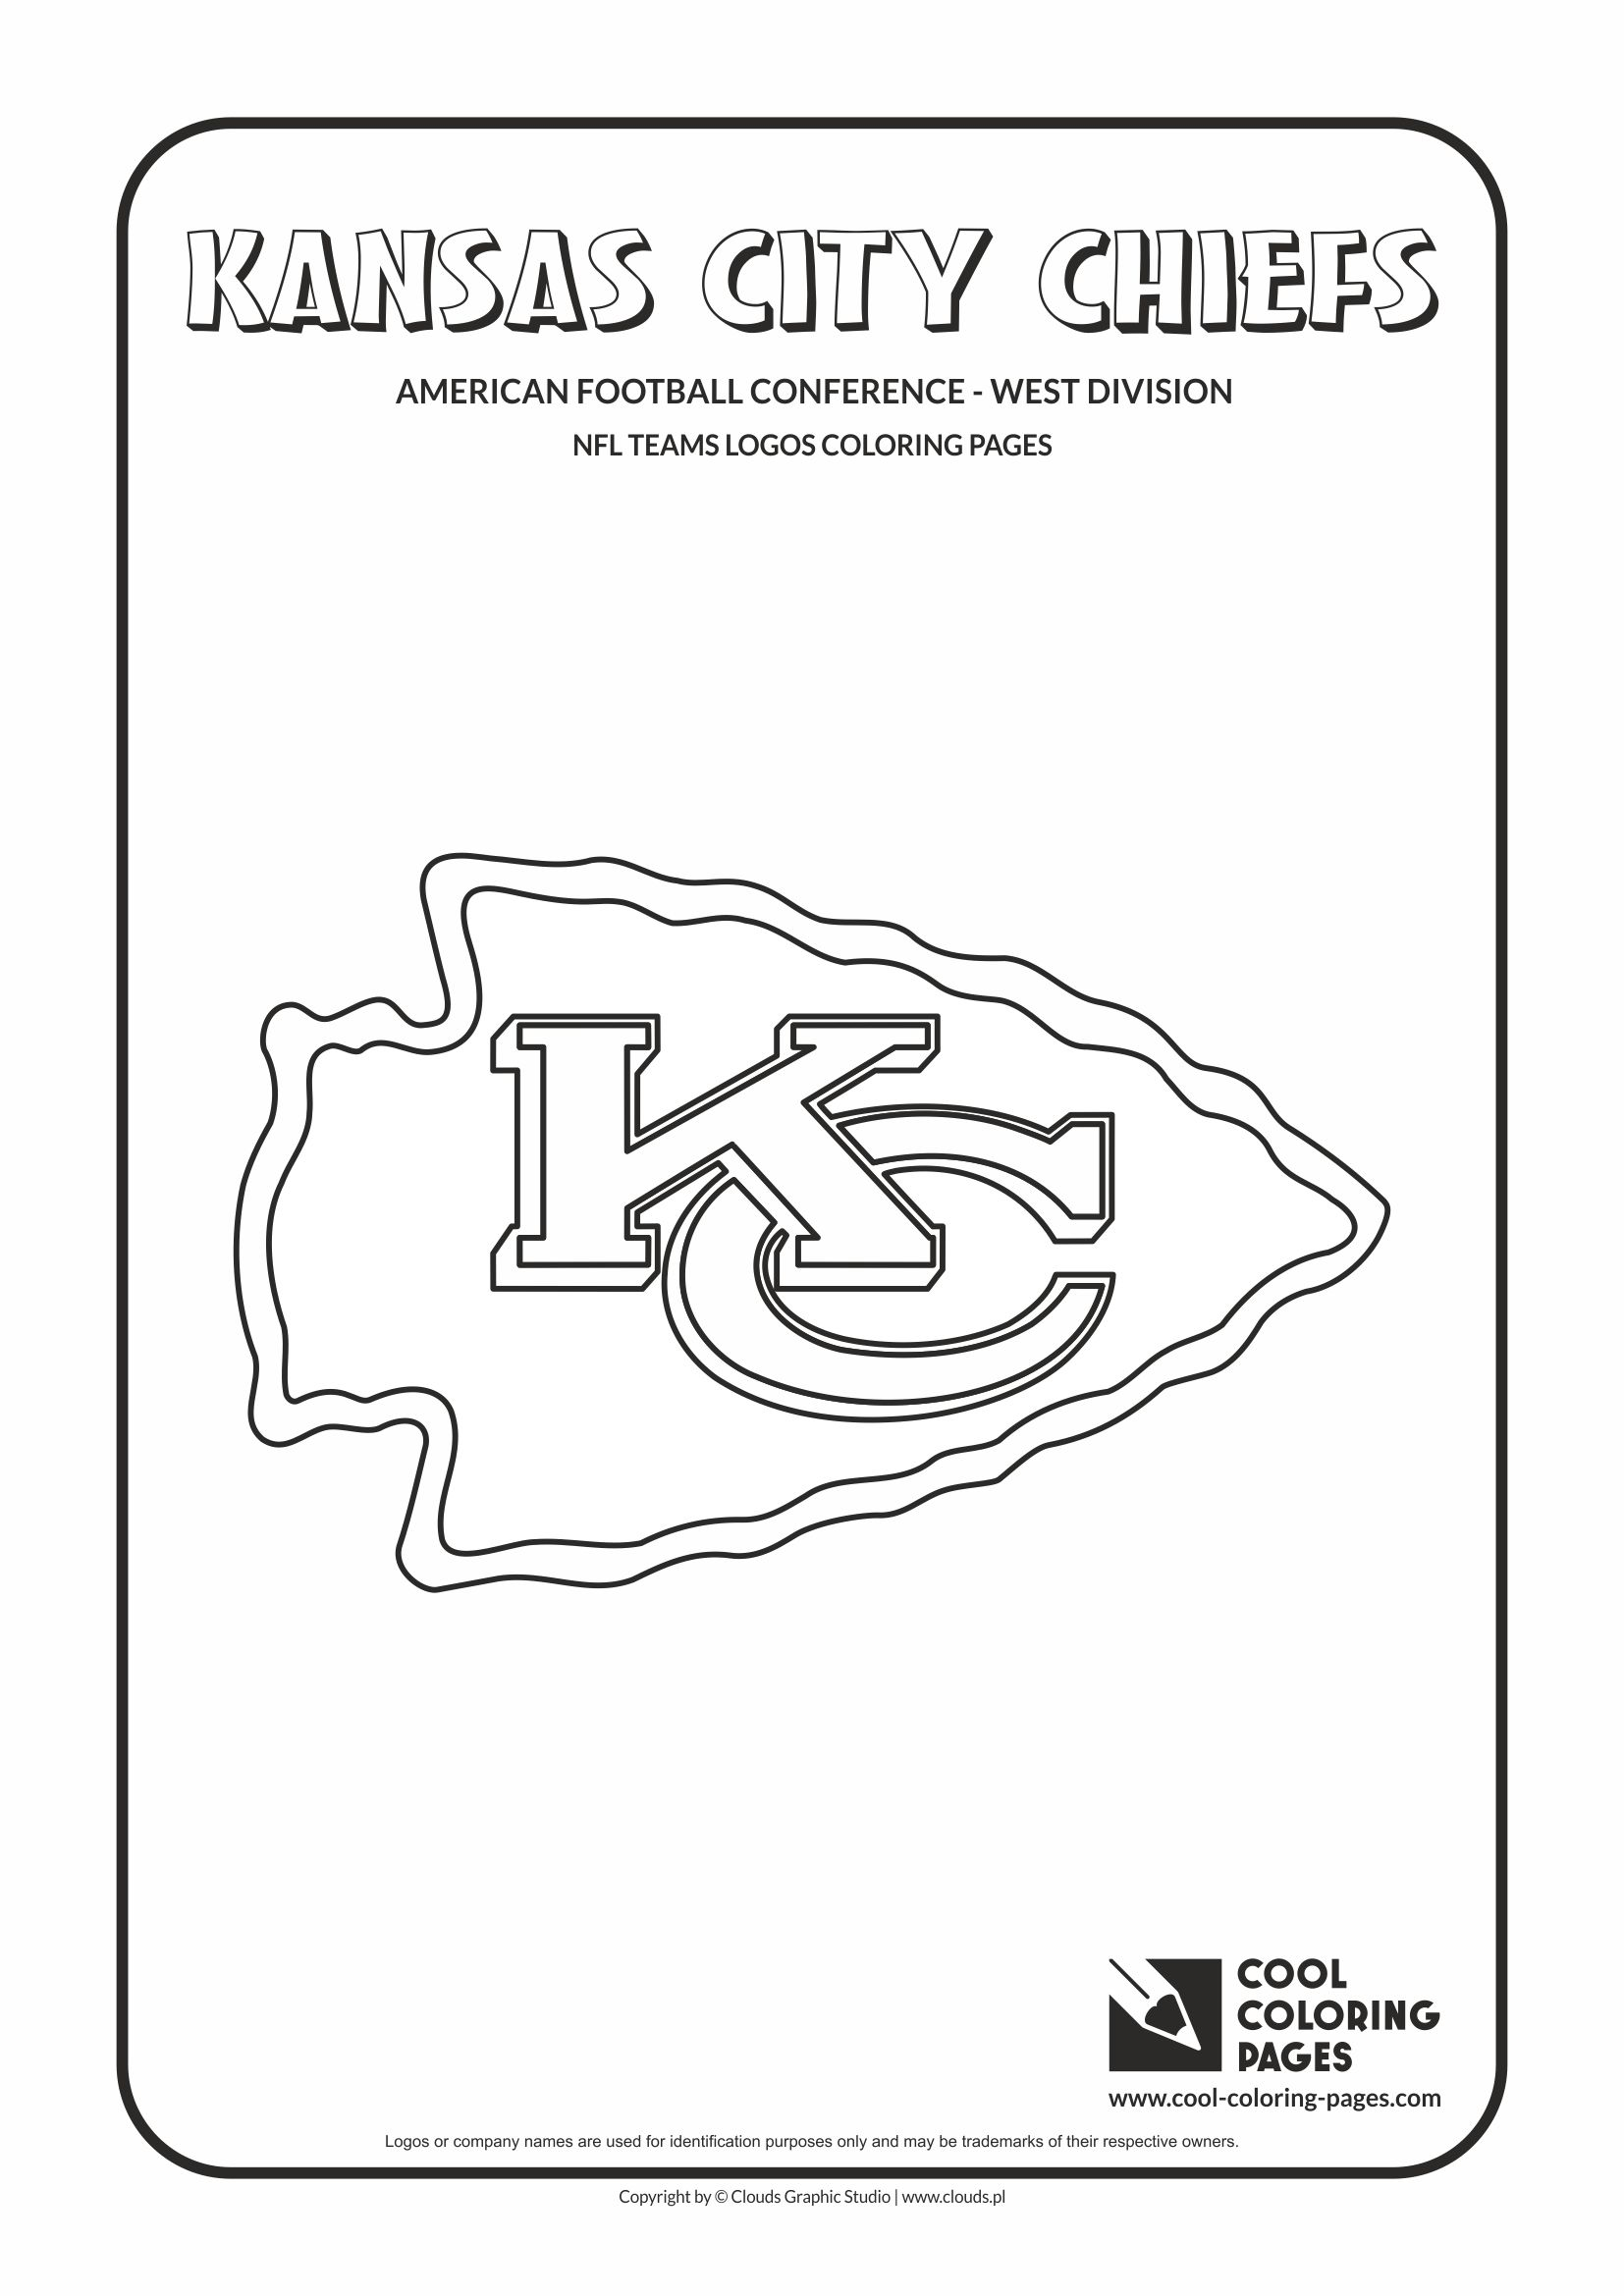 Cool Coloring Pages - NFL American Football Clubs Logos - American Football Conference - West Division / Kansas City Chiefs logo / Coloring page with Kansas City Chiefs logo